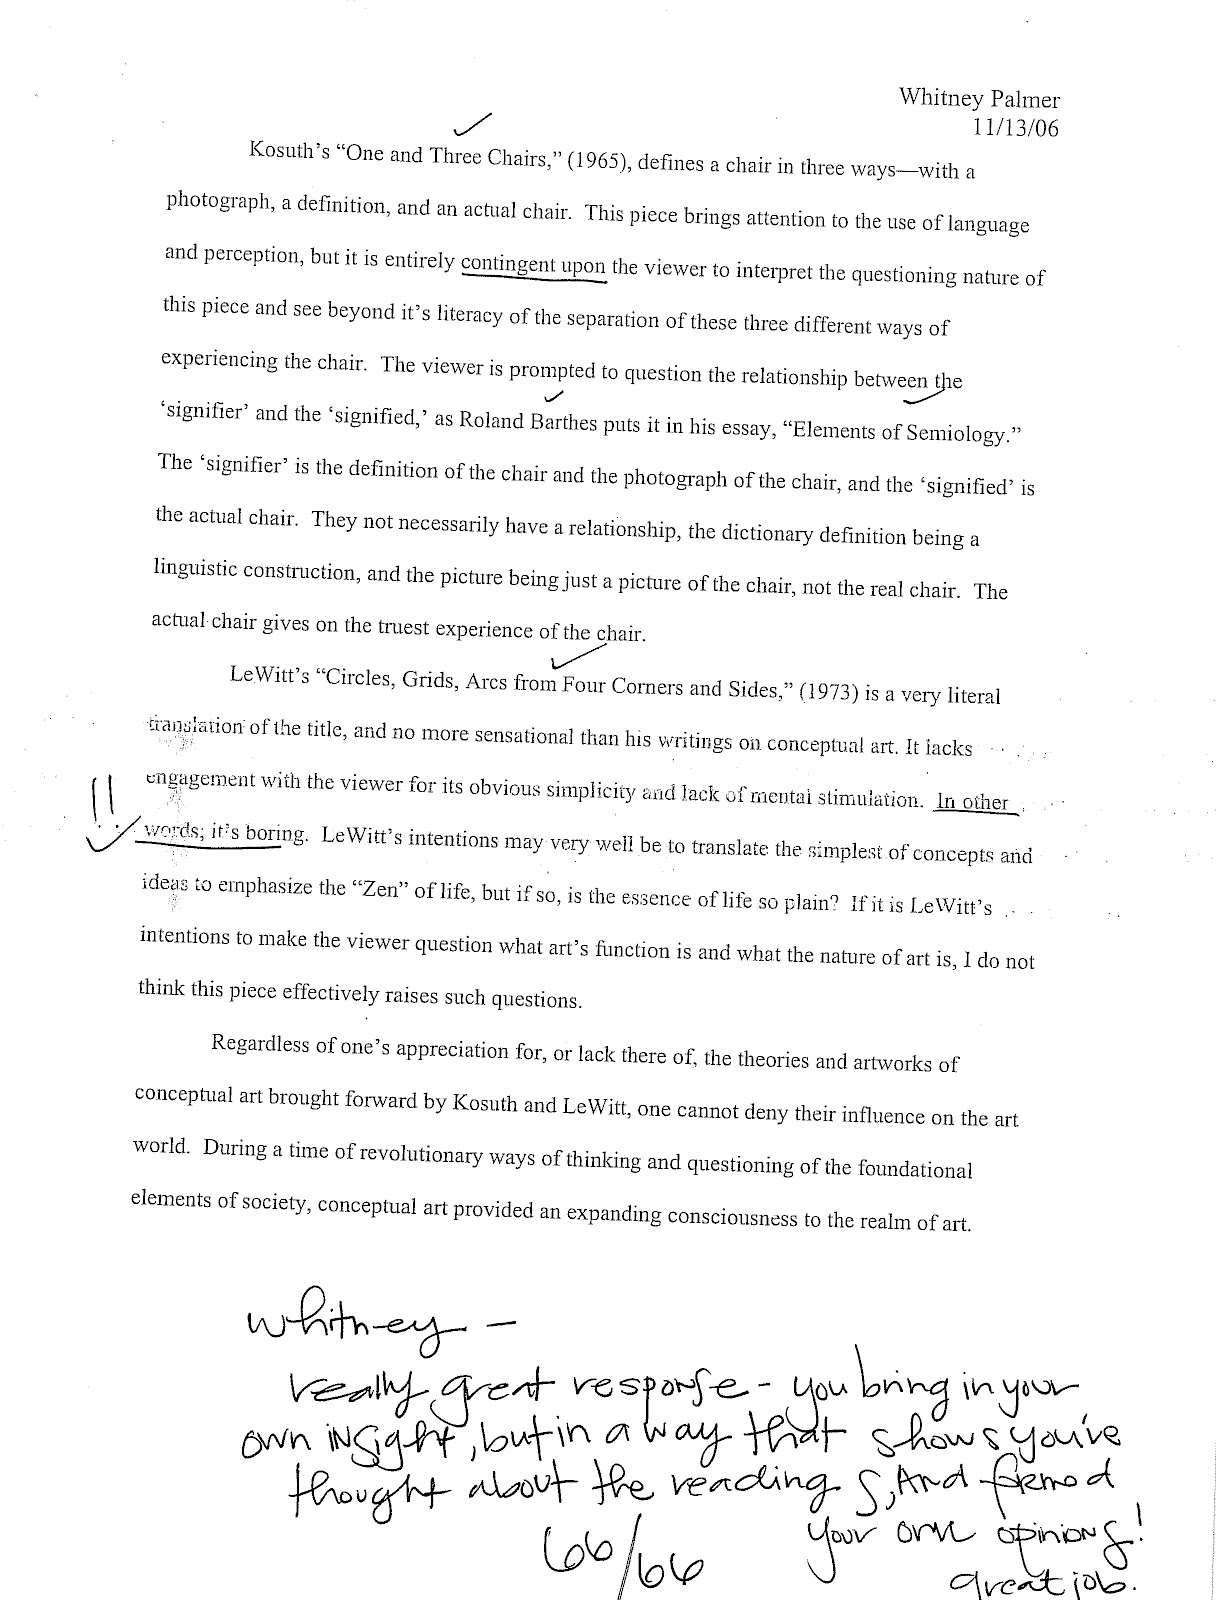 essay from art history 354 fall 2006 contemporary art post 1945 essay from art history 354 fall 2006 contemporary art post 1945 wwii a comparative analysis on sol lewitt s paragraphs on conceptual art and sentences